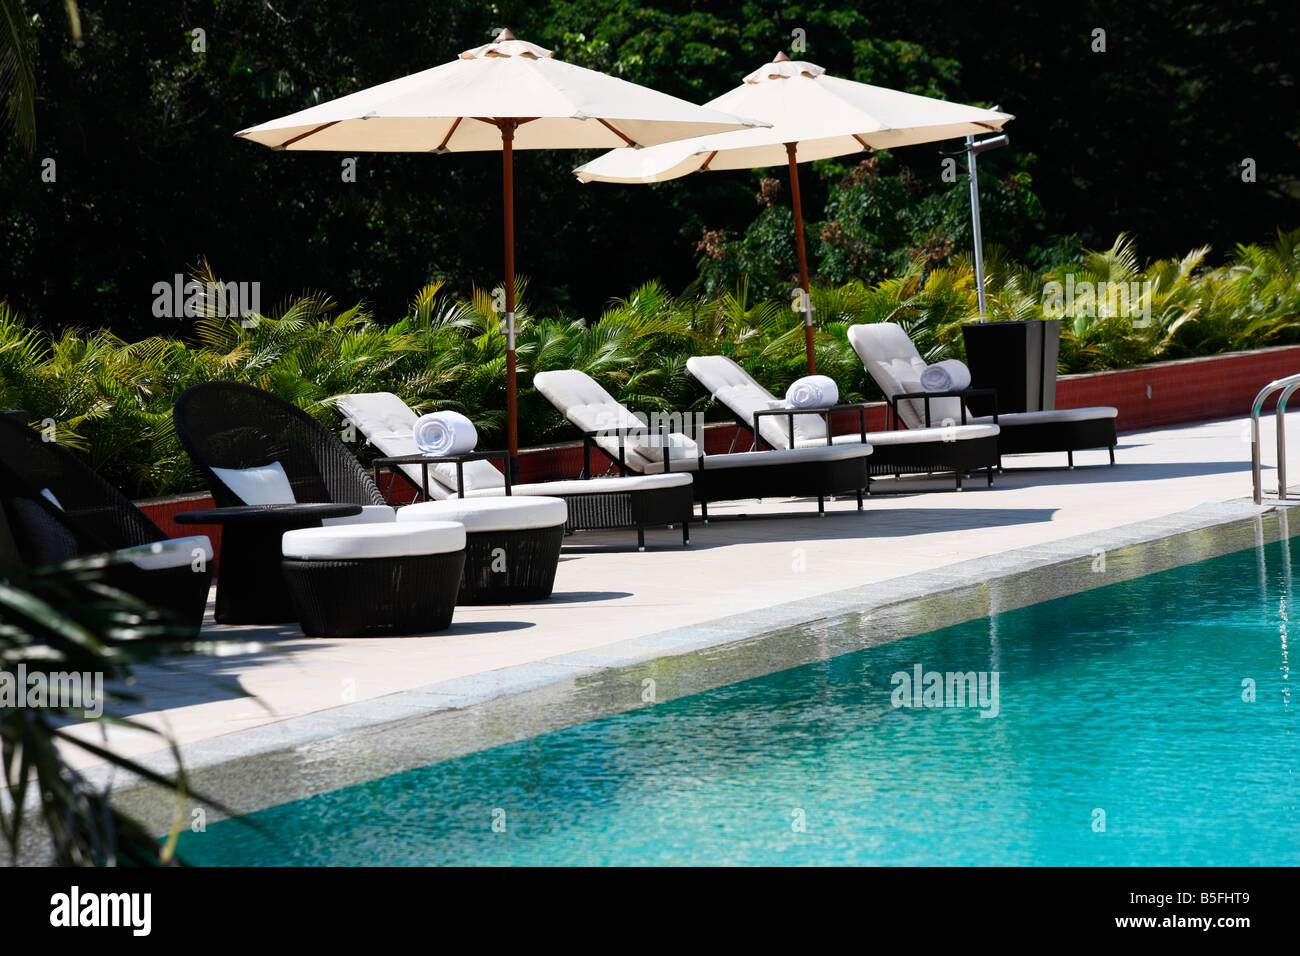 swimming pool with deck chairs in a five star hotel in keralaindia - Swimming Pool Deck Chairs